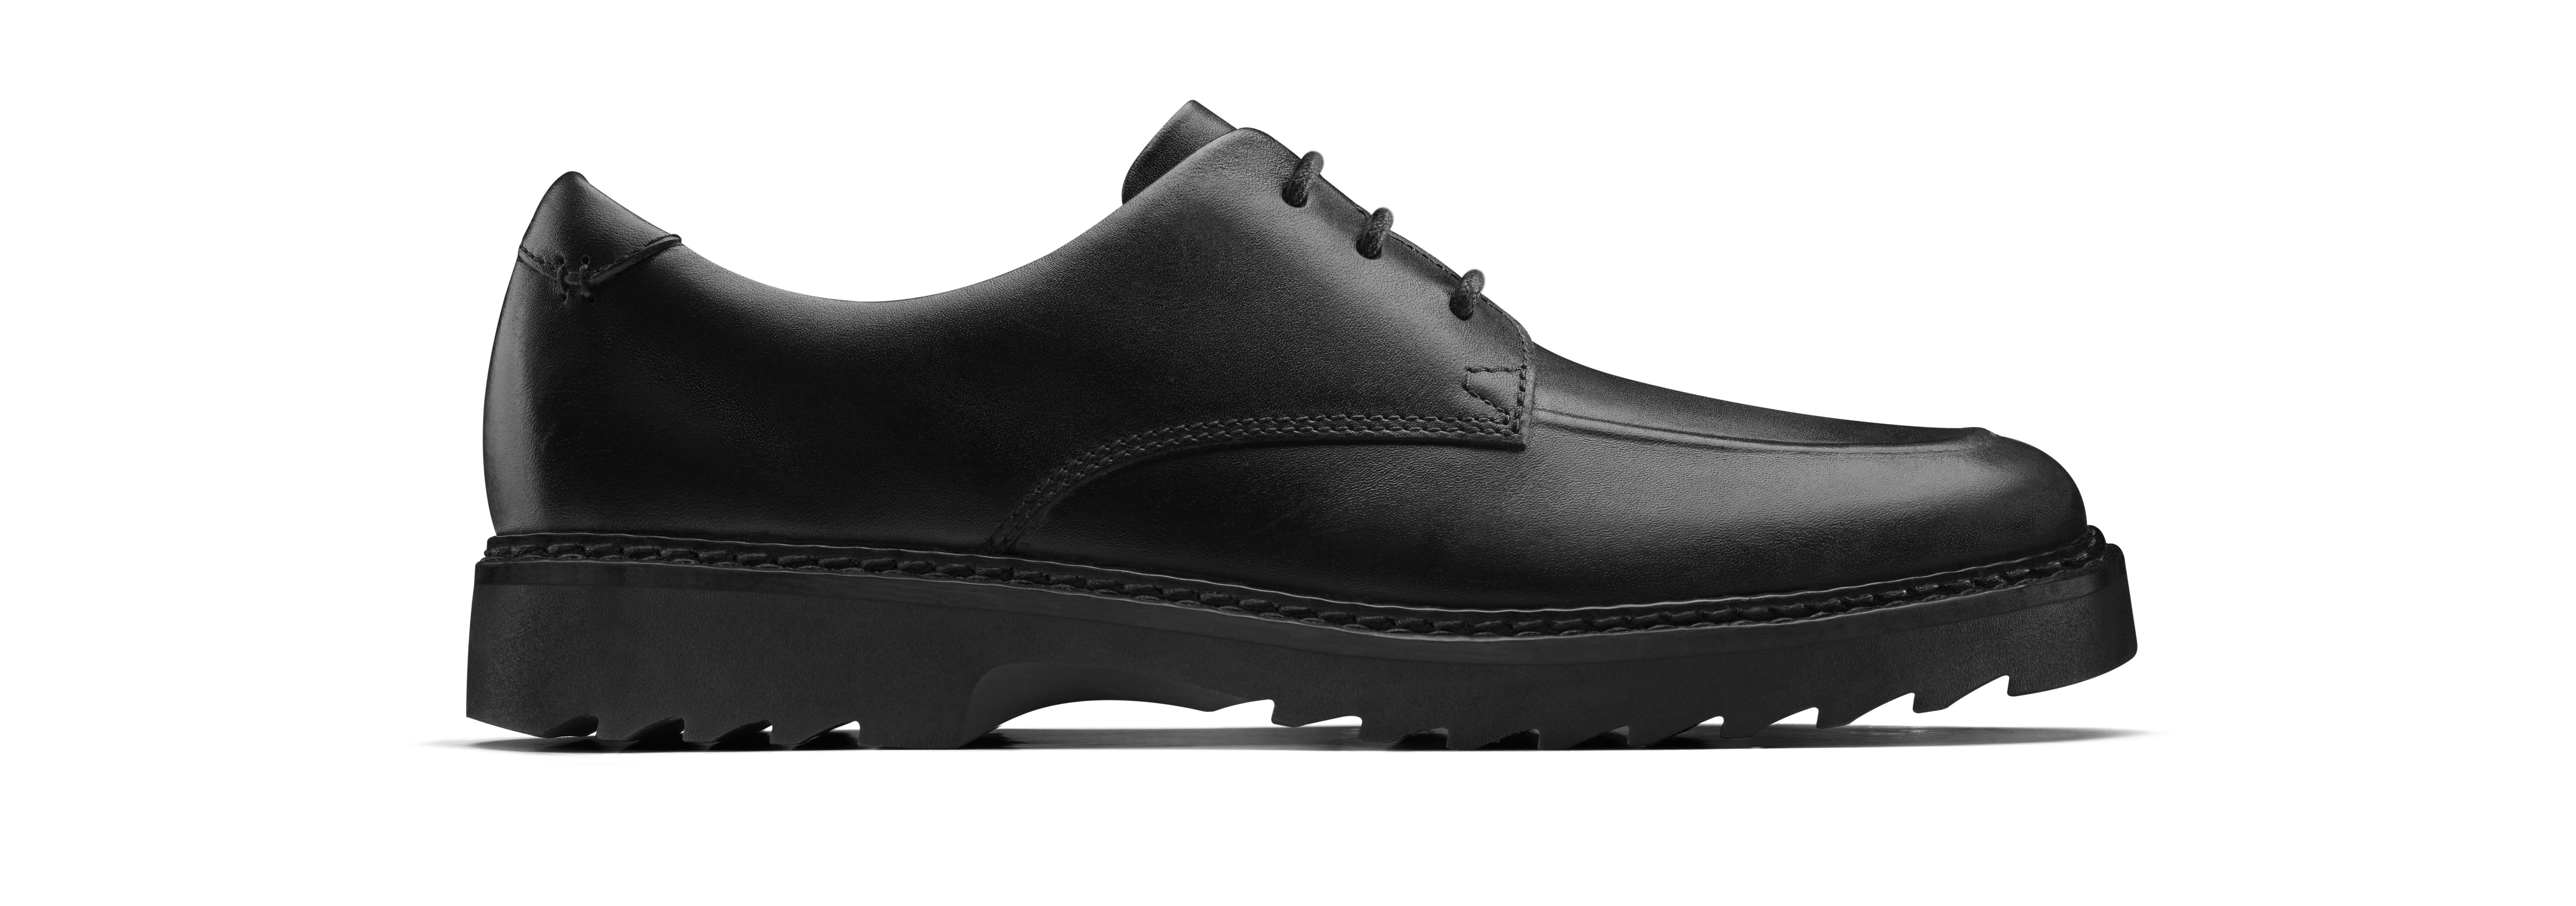 Asher Grove black leather school shoes, £60, Clarks